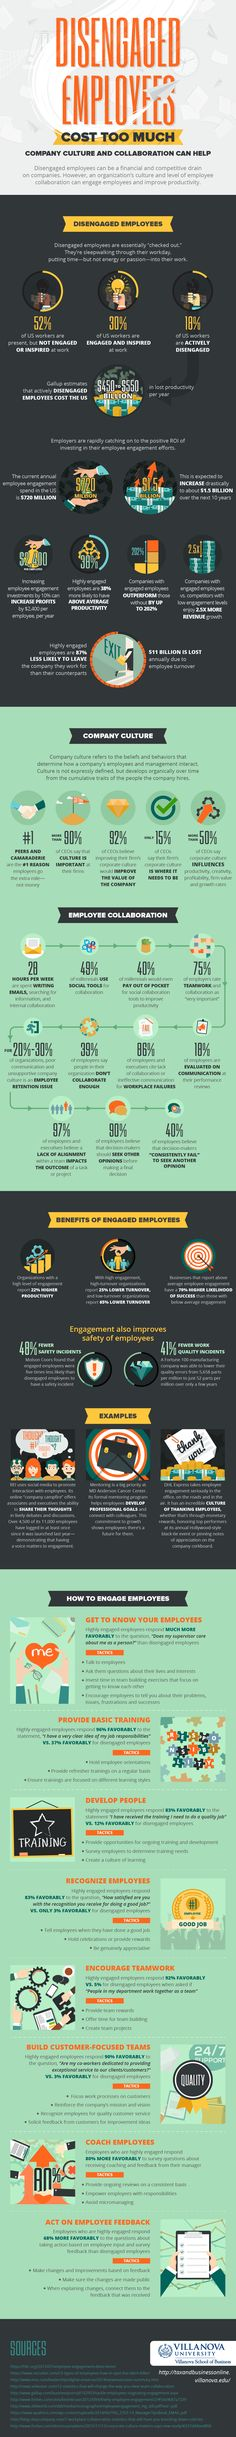 How Culture and Collaboration Can Increase Employee Engagement Social Business, Employee Engagement, Teamwork, Corporate Events, Infographic, Have Fun, Productivity, Collaboration, Campaign